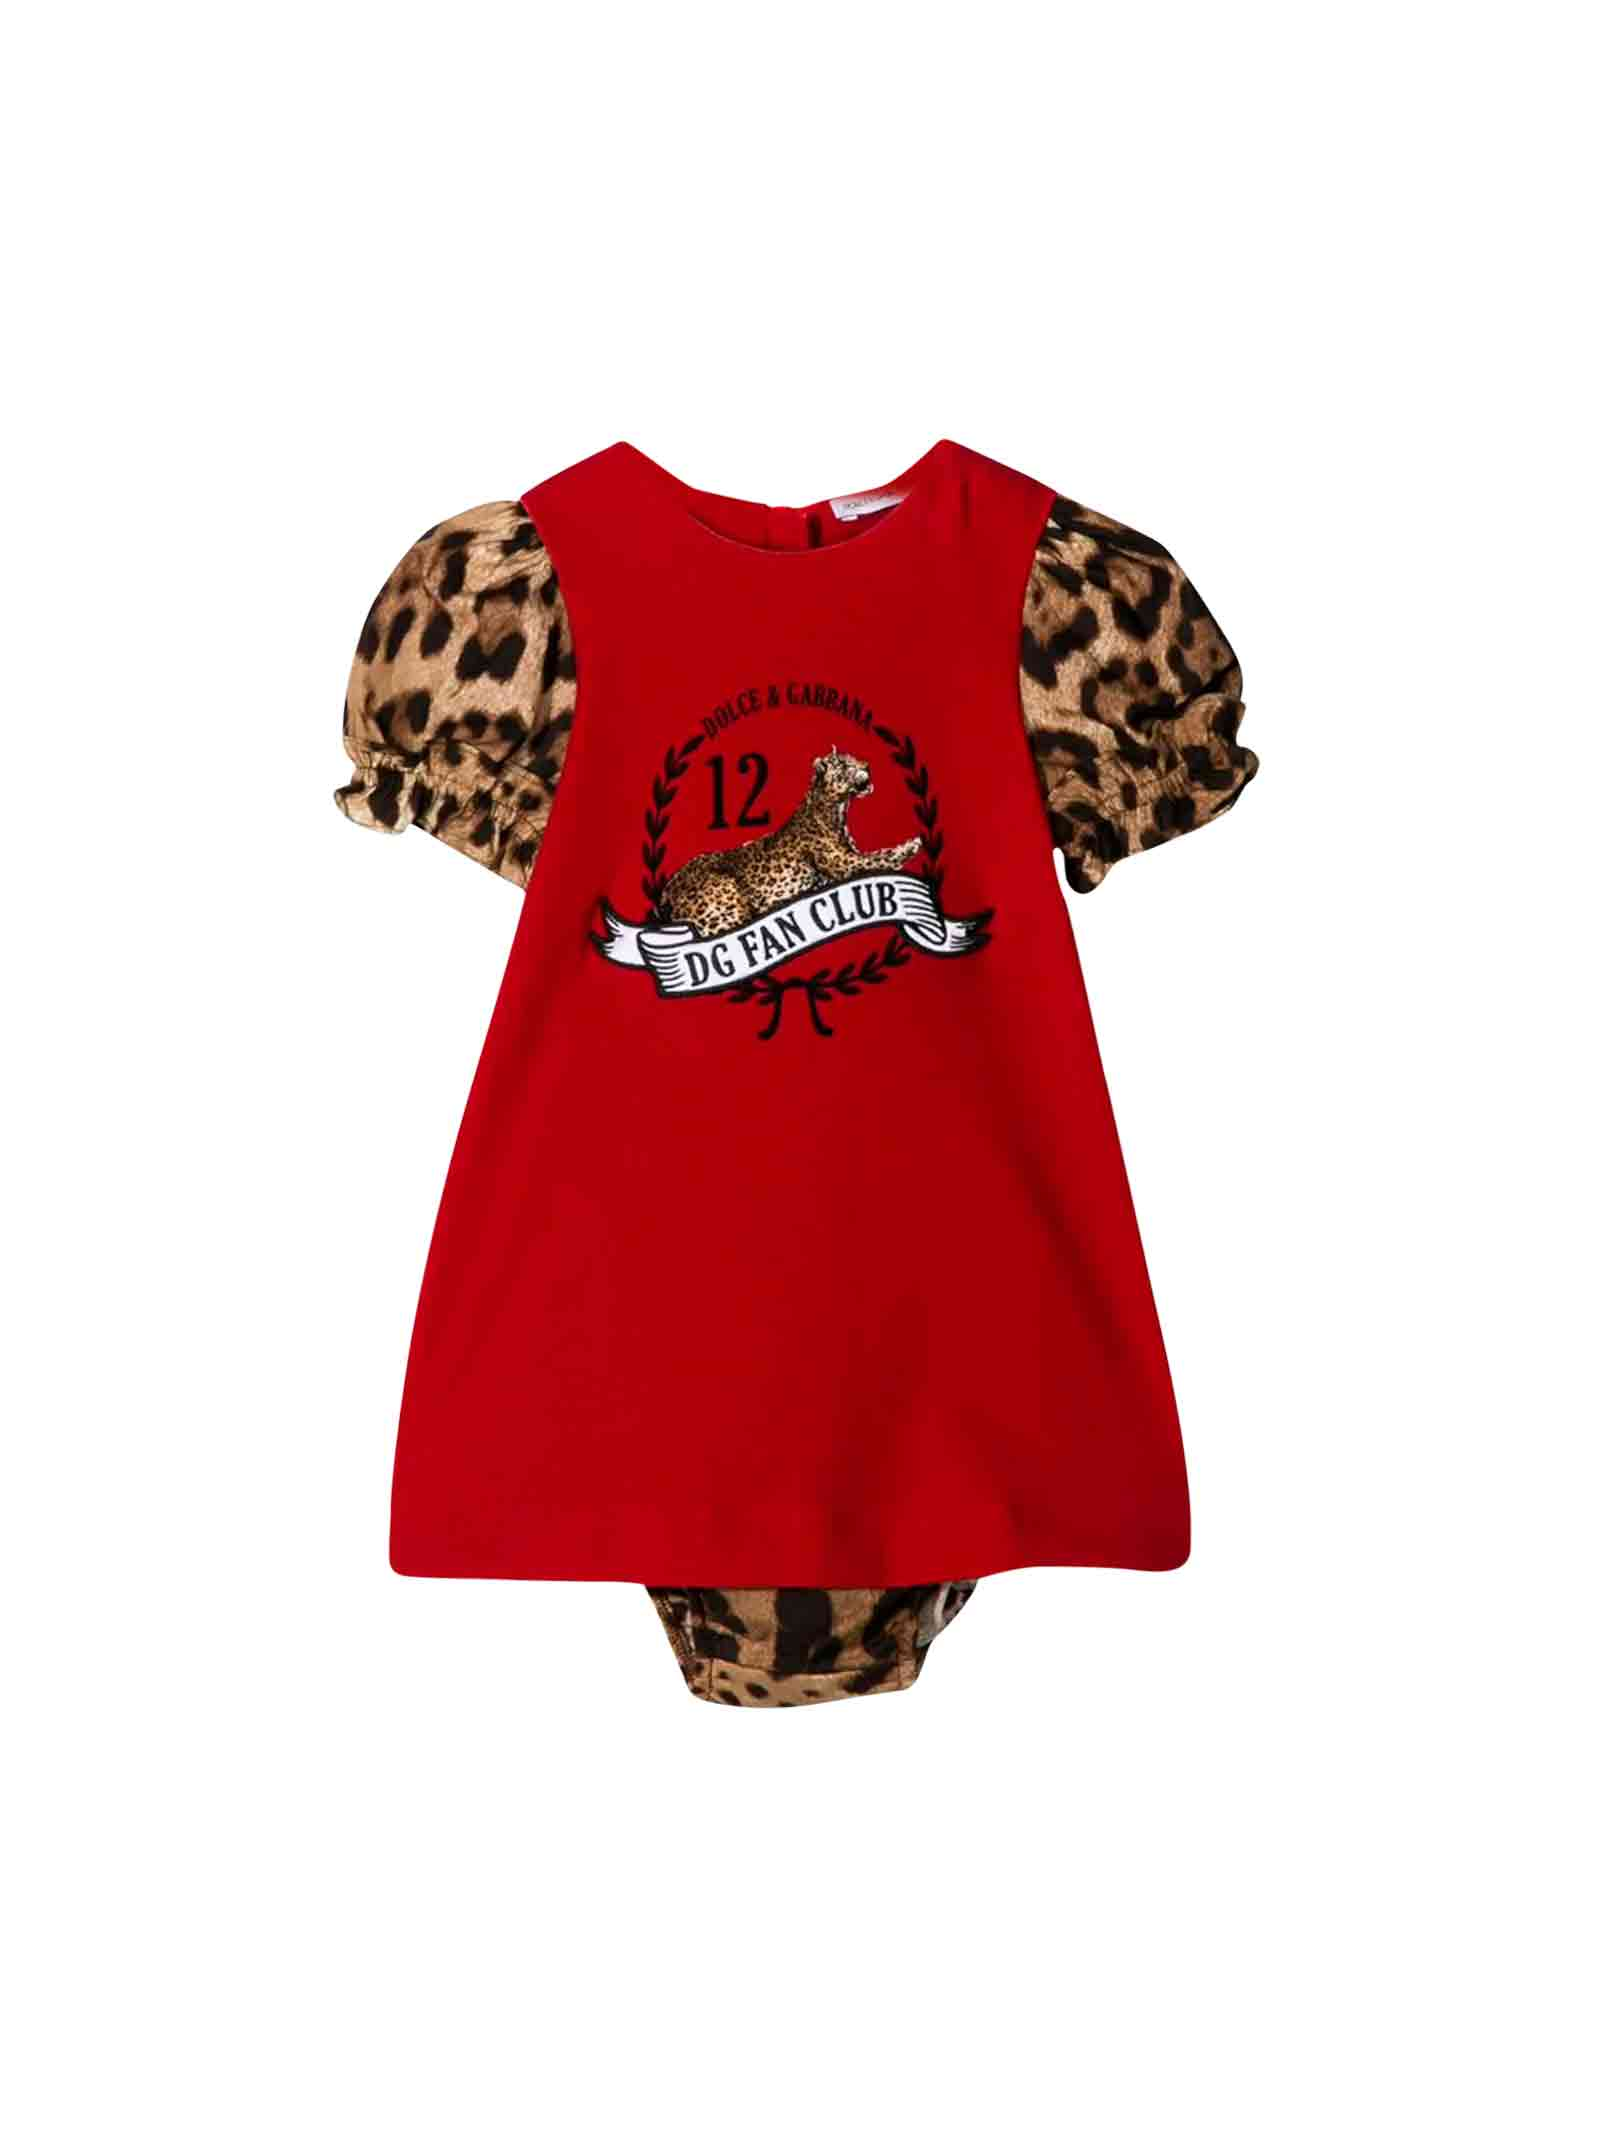 Dolce & Gabbana Red Dolce E Gabbana Kids Newborn Dress